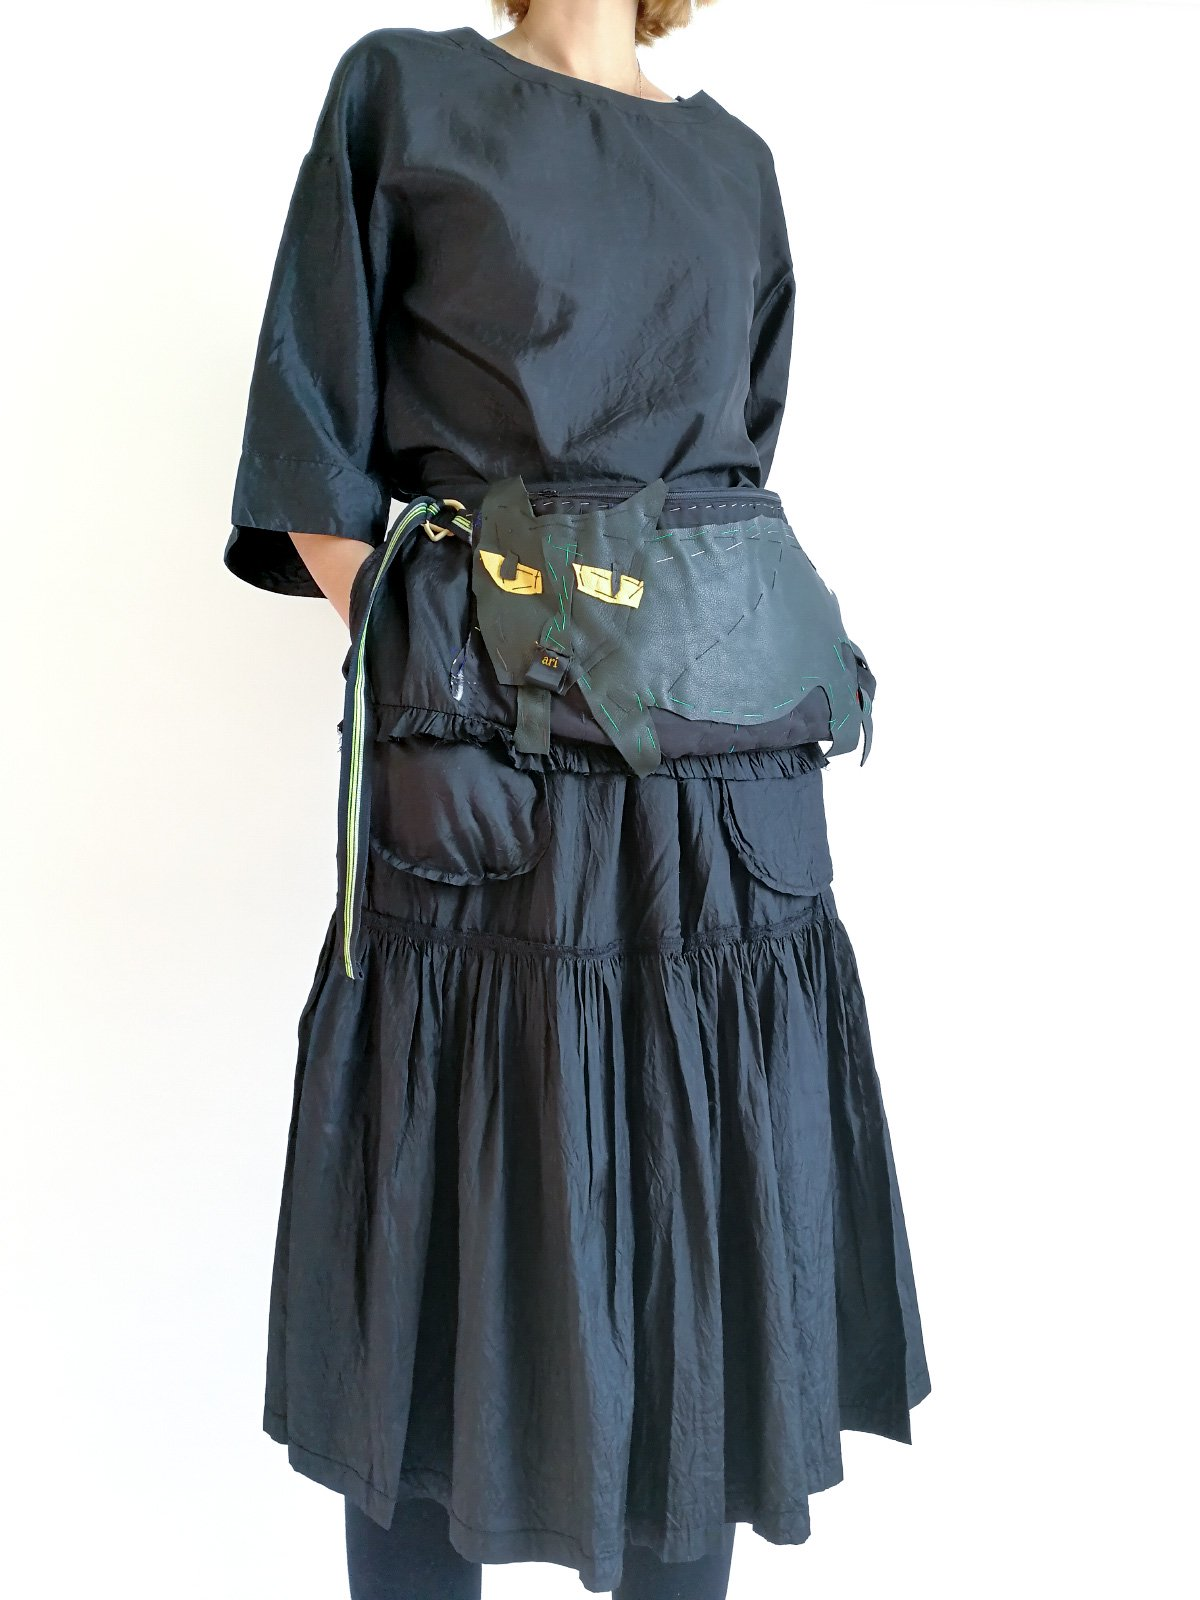 ari×mamarobot / Black Skirt with Cat Bag